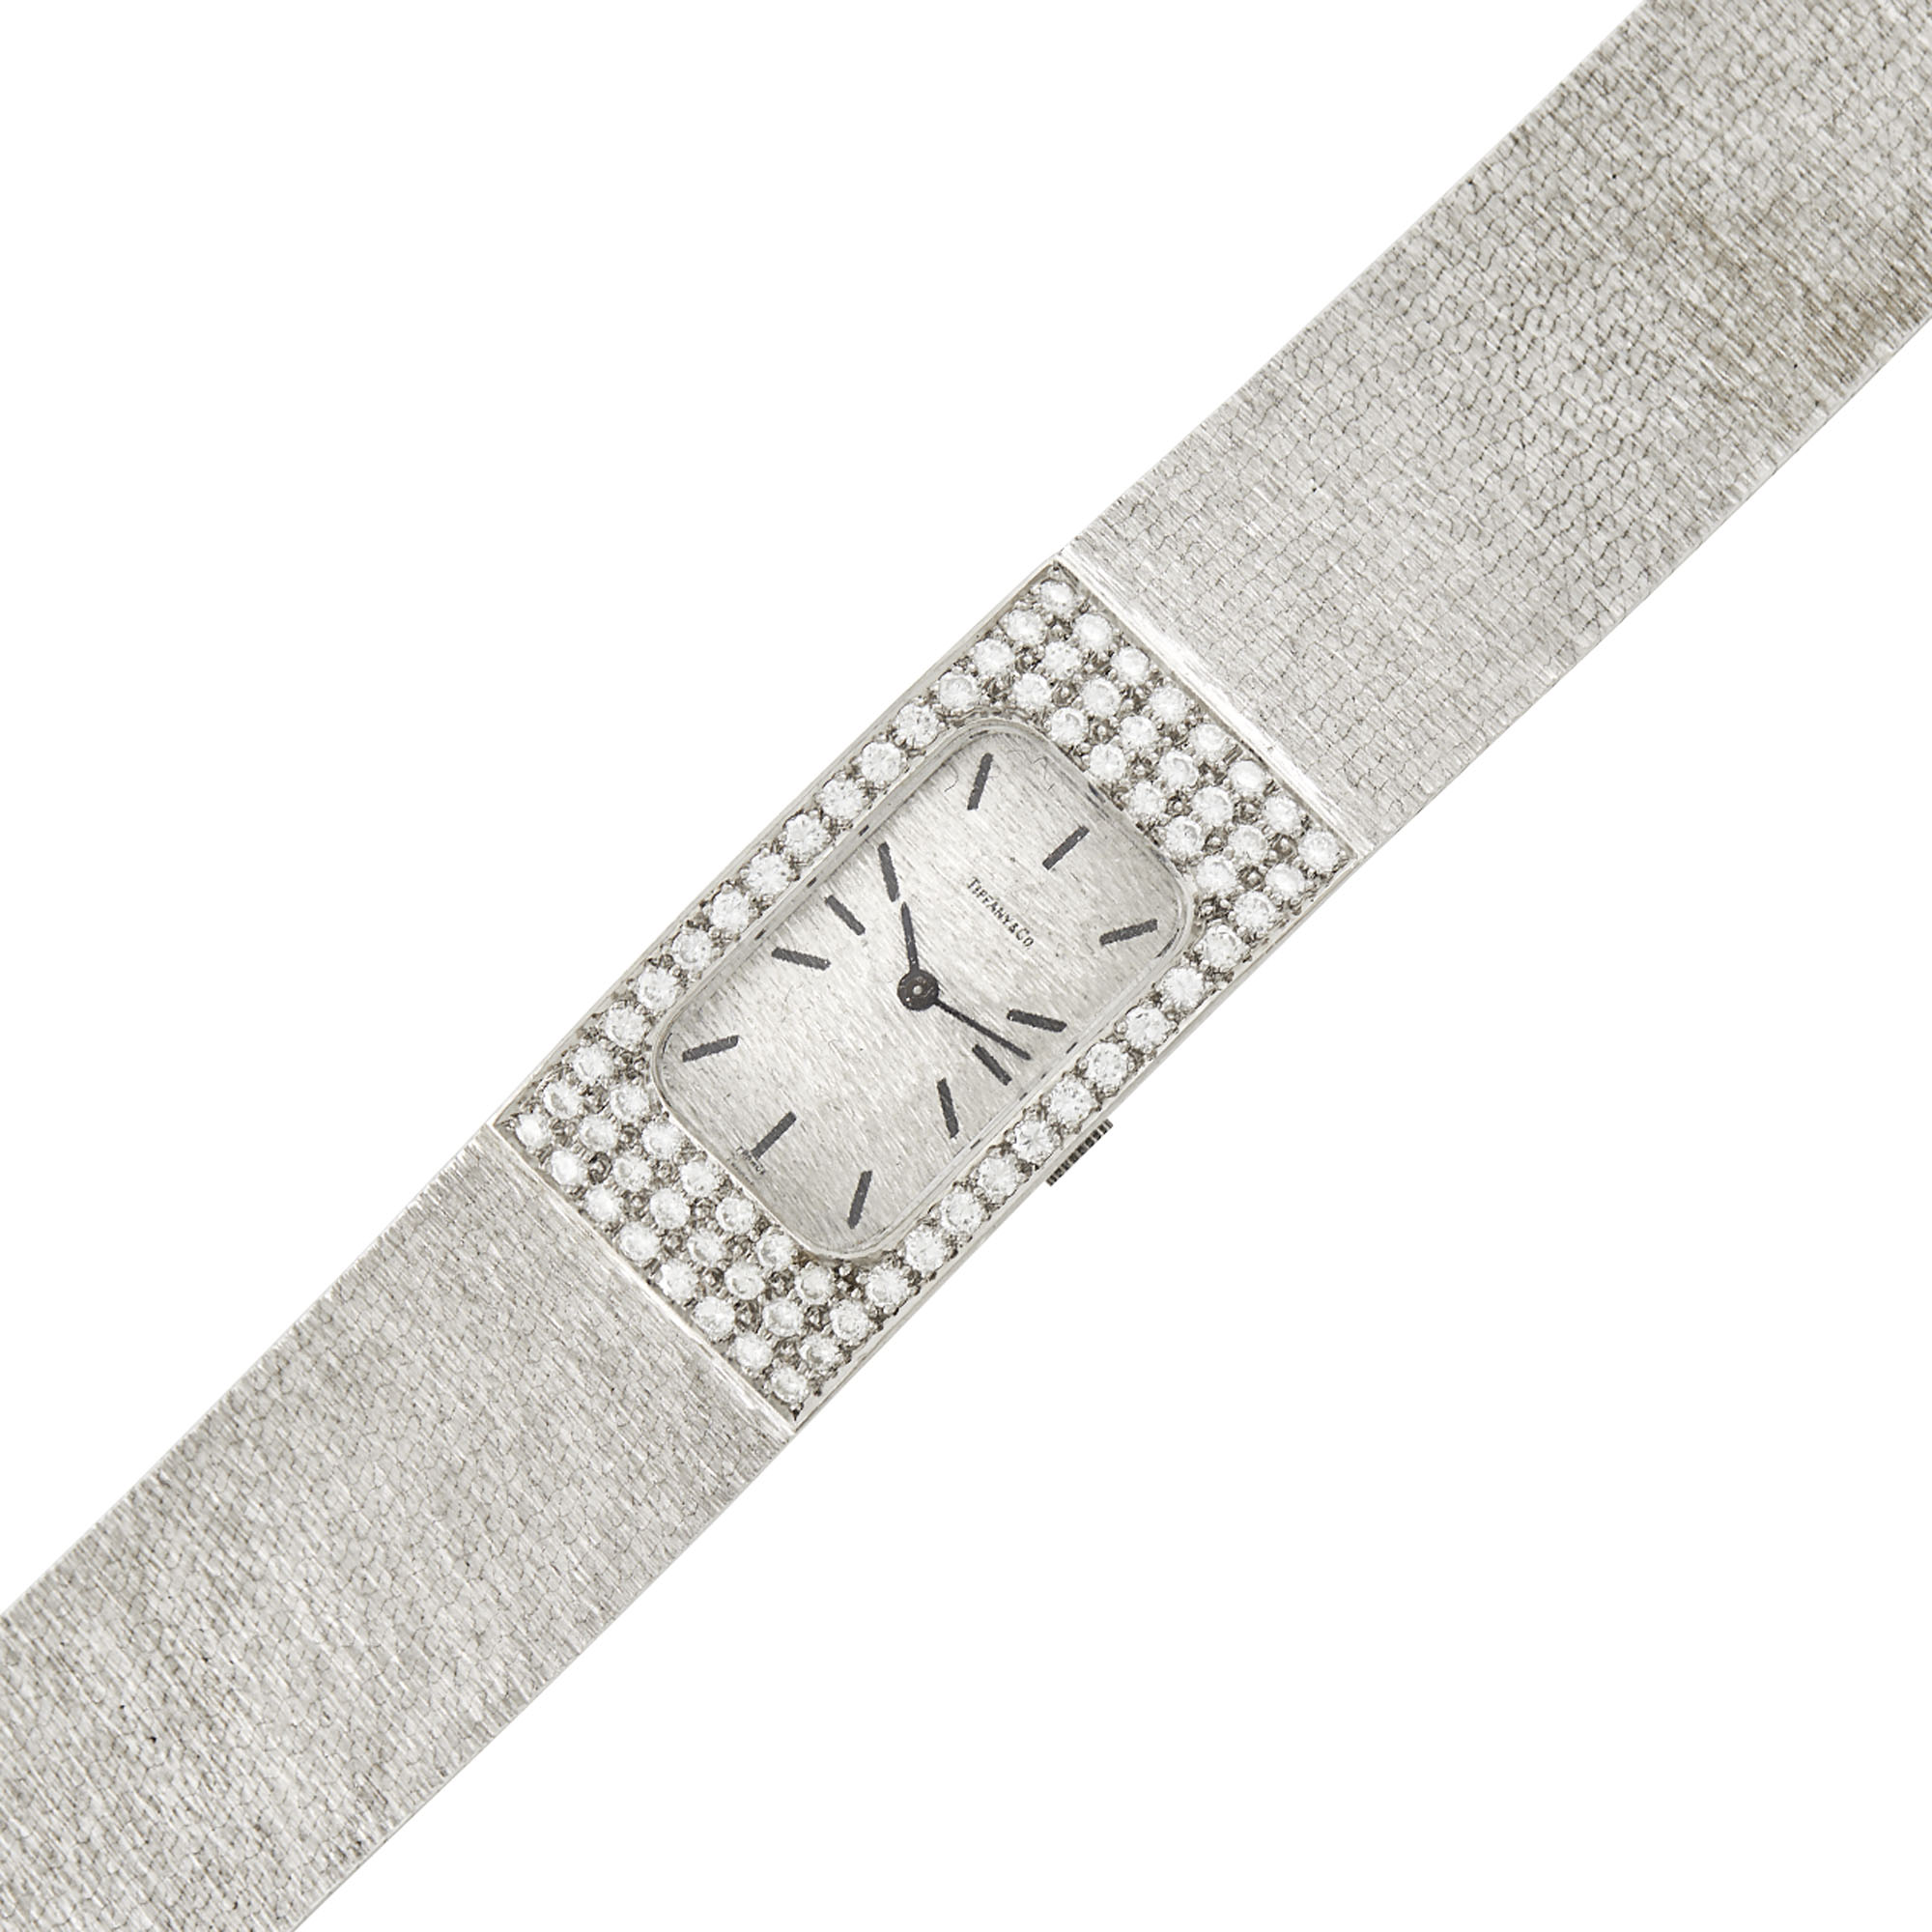 Lot image - Tiffany & Co. White Gold and Diamond Wristwatch, France